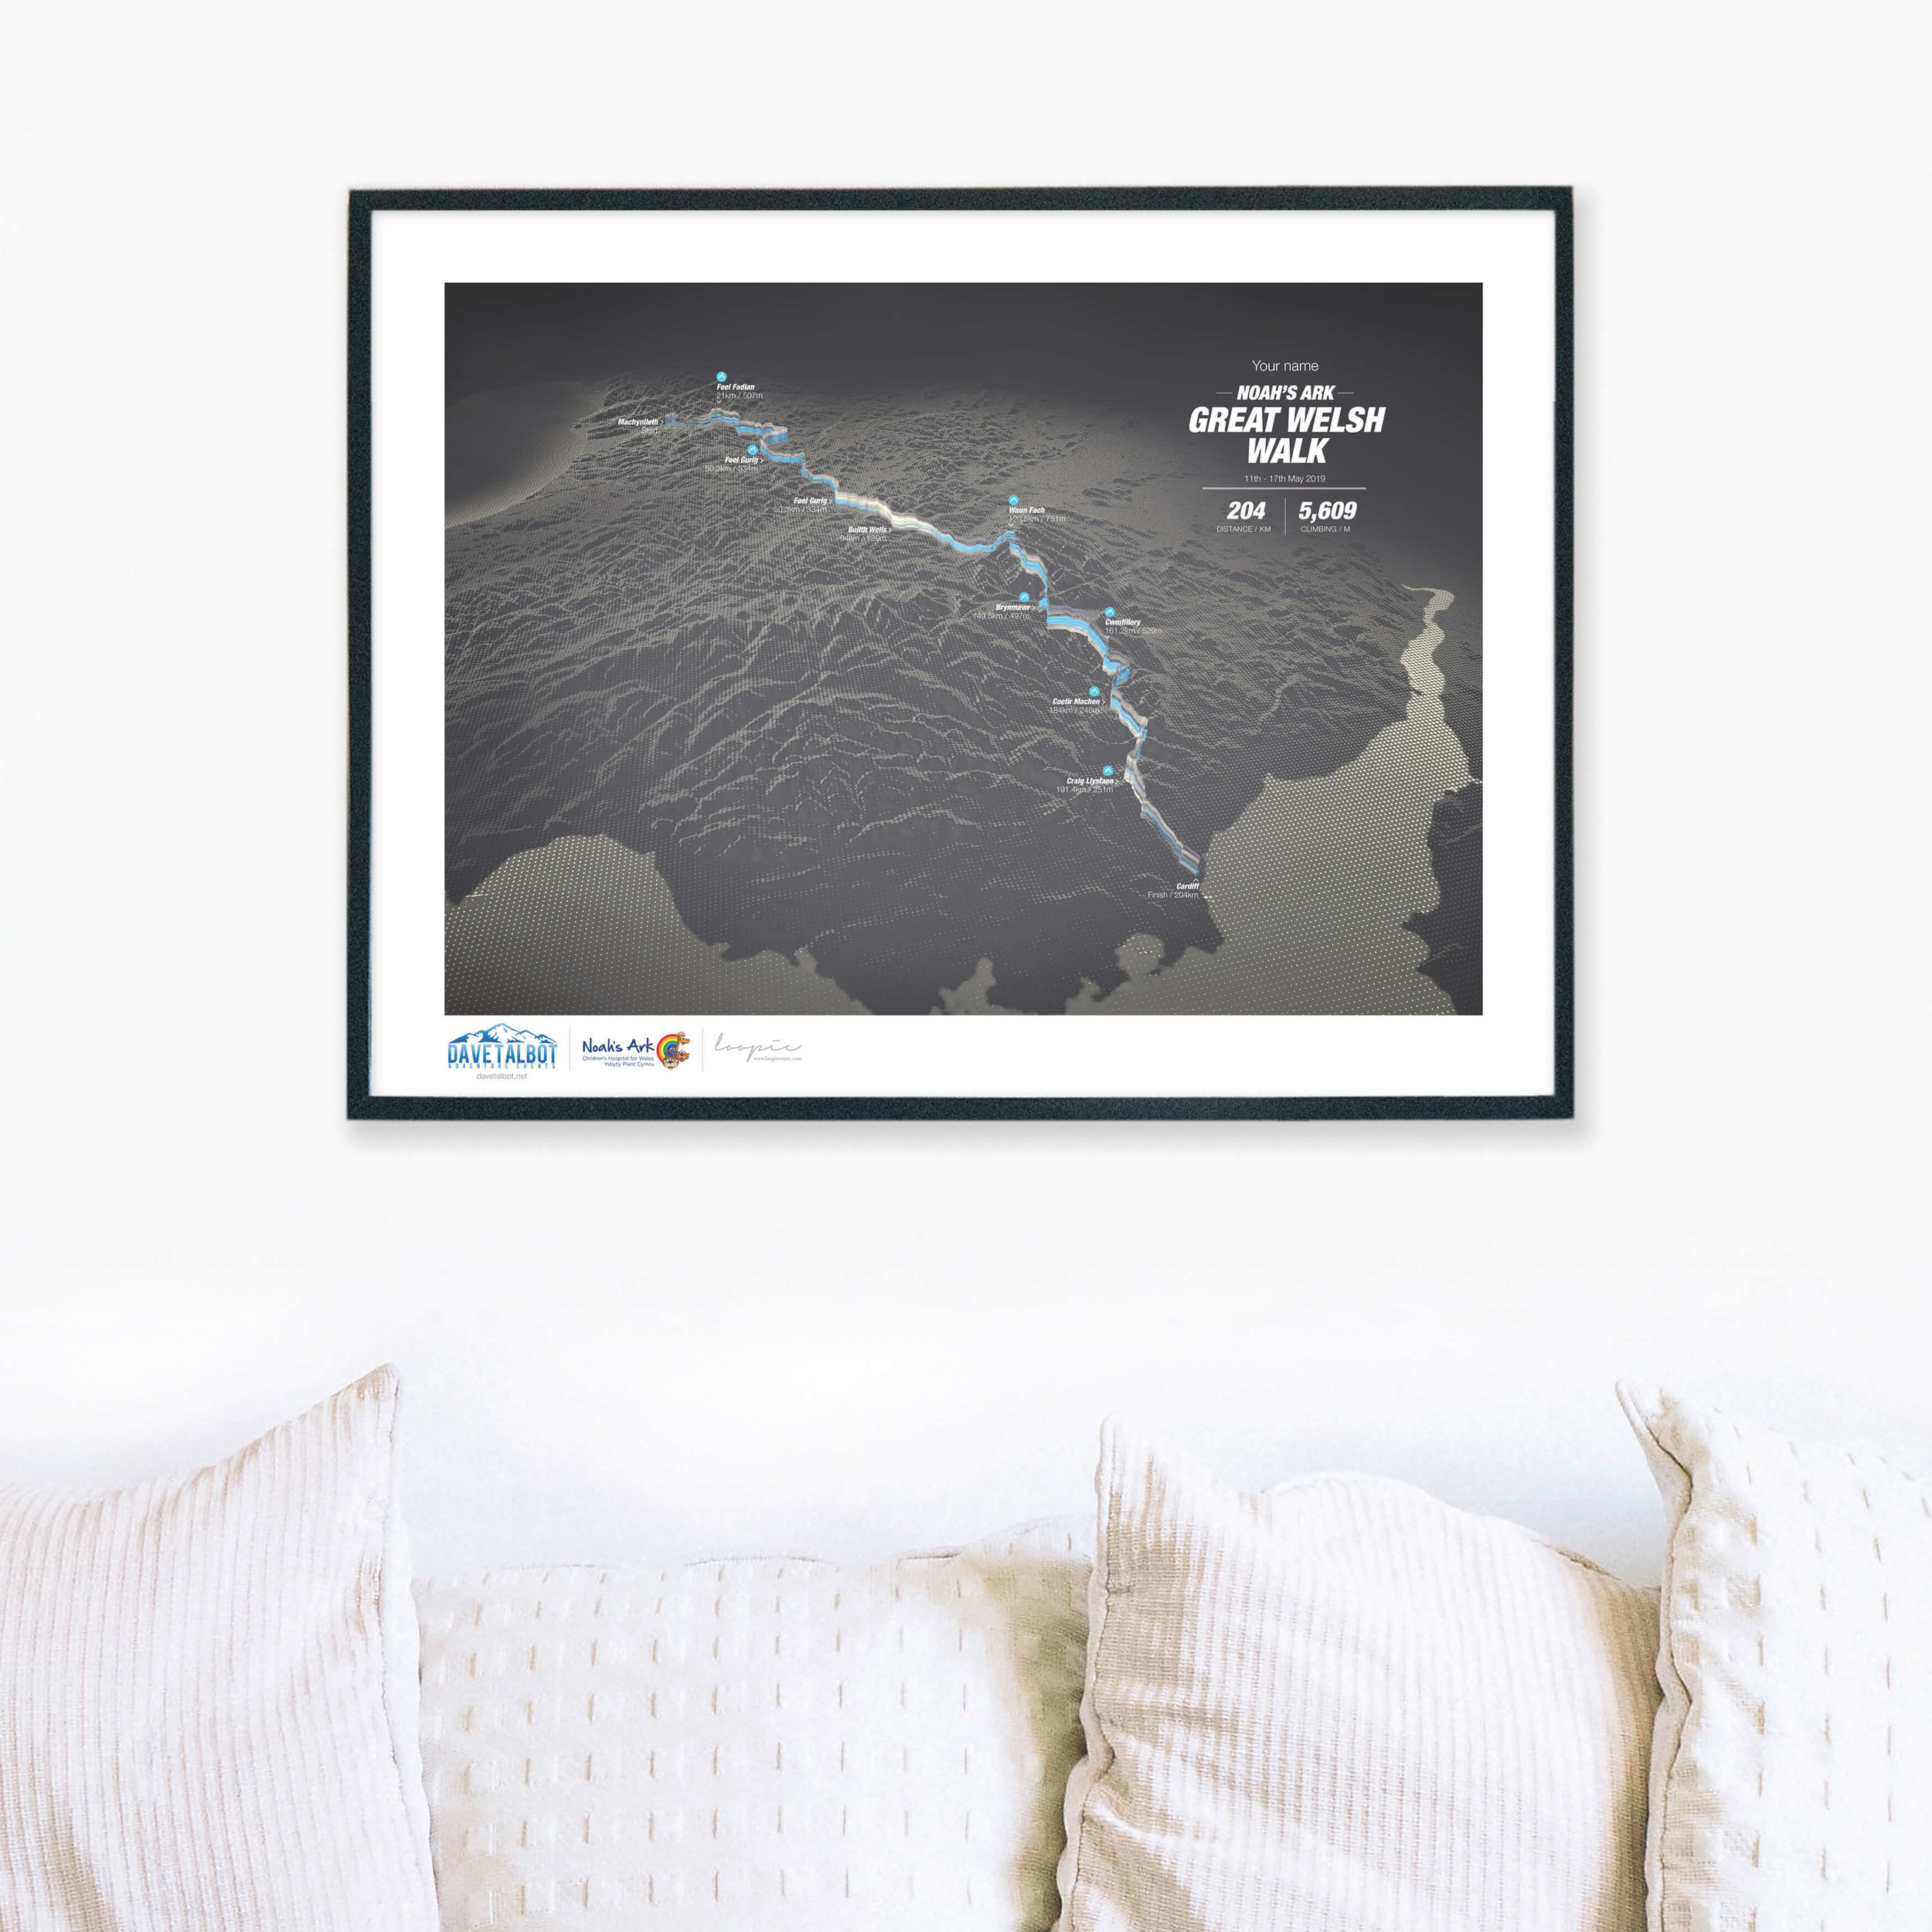 Noah's ArkGreat Welsh Walk - Personalised GPS prints of your adventure